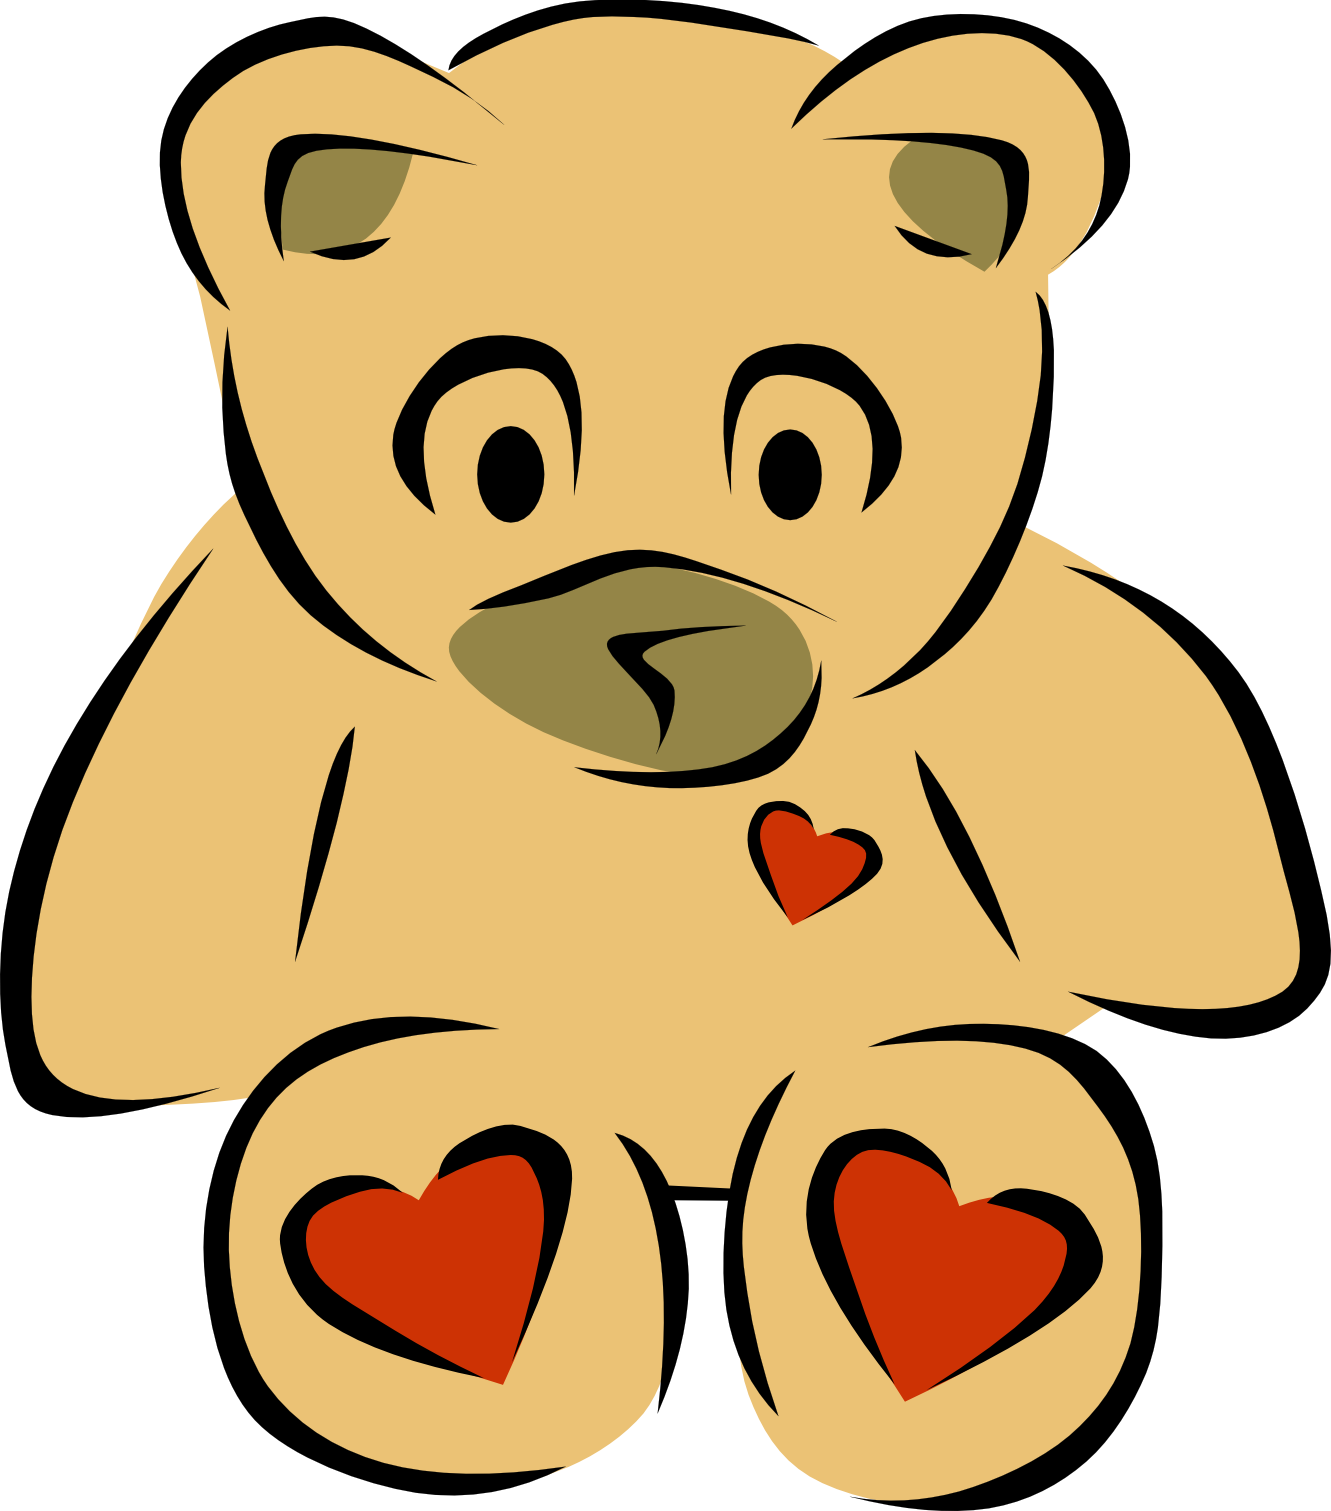 Grizzly Family clipart #2, Download drawings